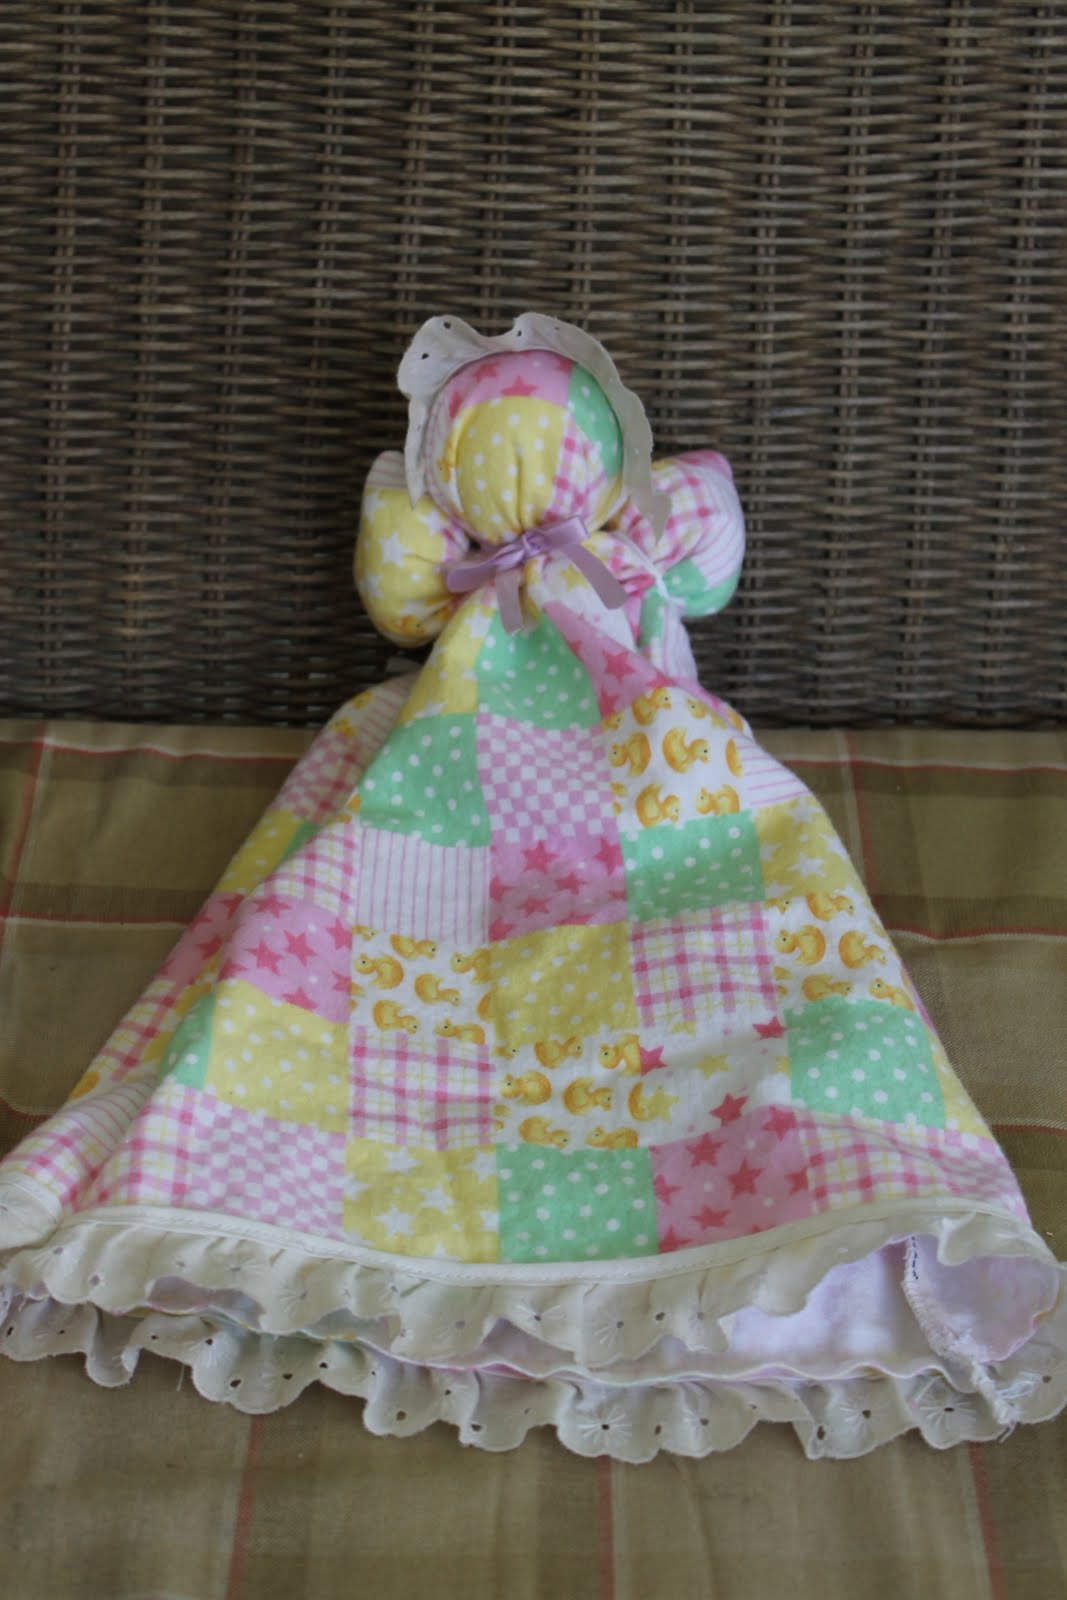 Sewing Patterns For Pillowcase Dolls: born imaginative   Pillowcase Doll (Upcycled),